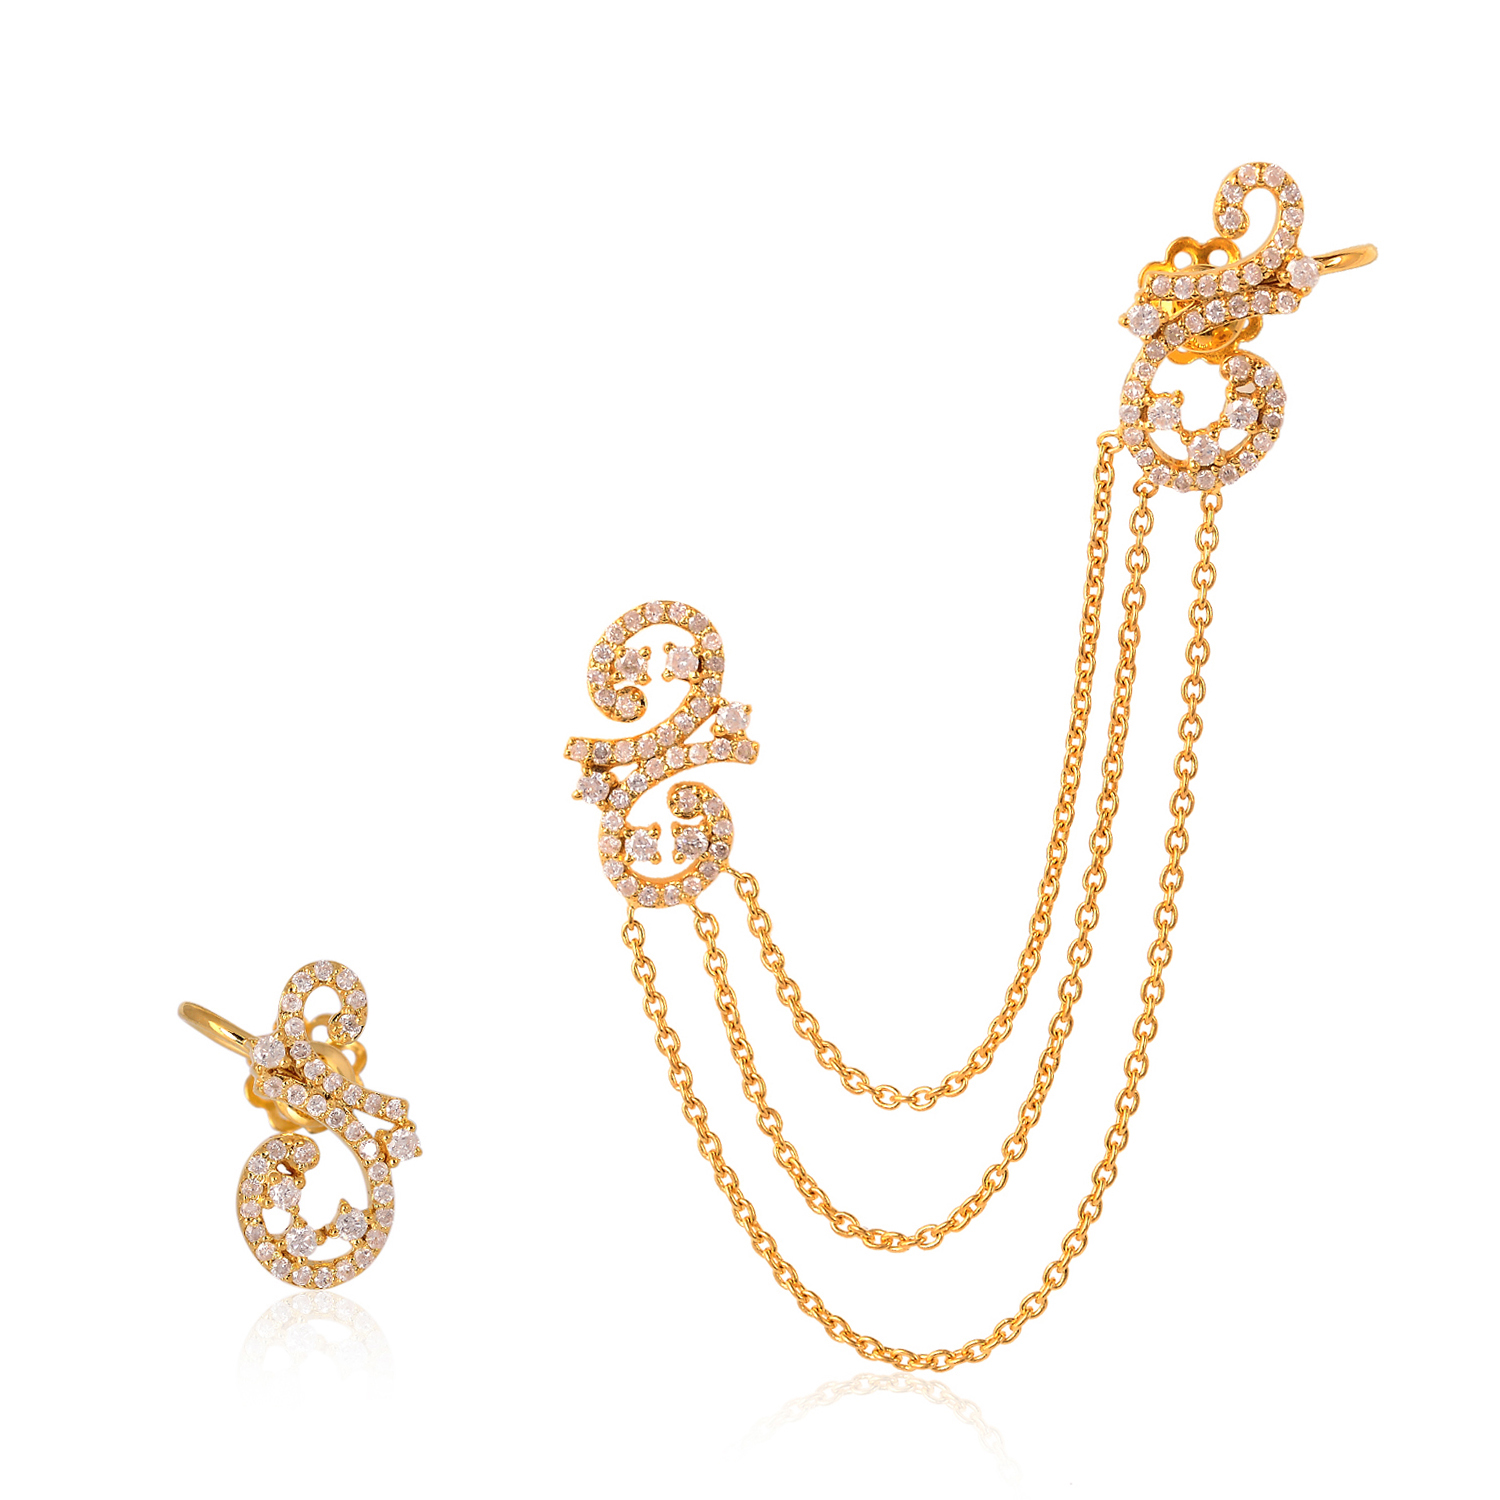 Details About 18kt Yellow Gold 1 01ct Pave Diamond Chain Cuff Earrings Party Wear Jewelry